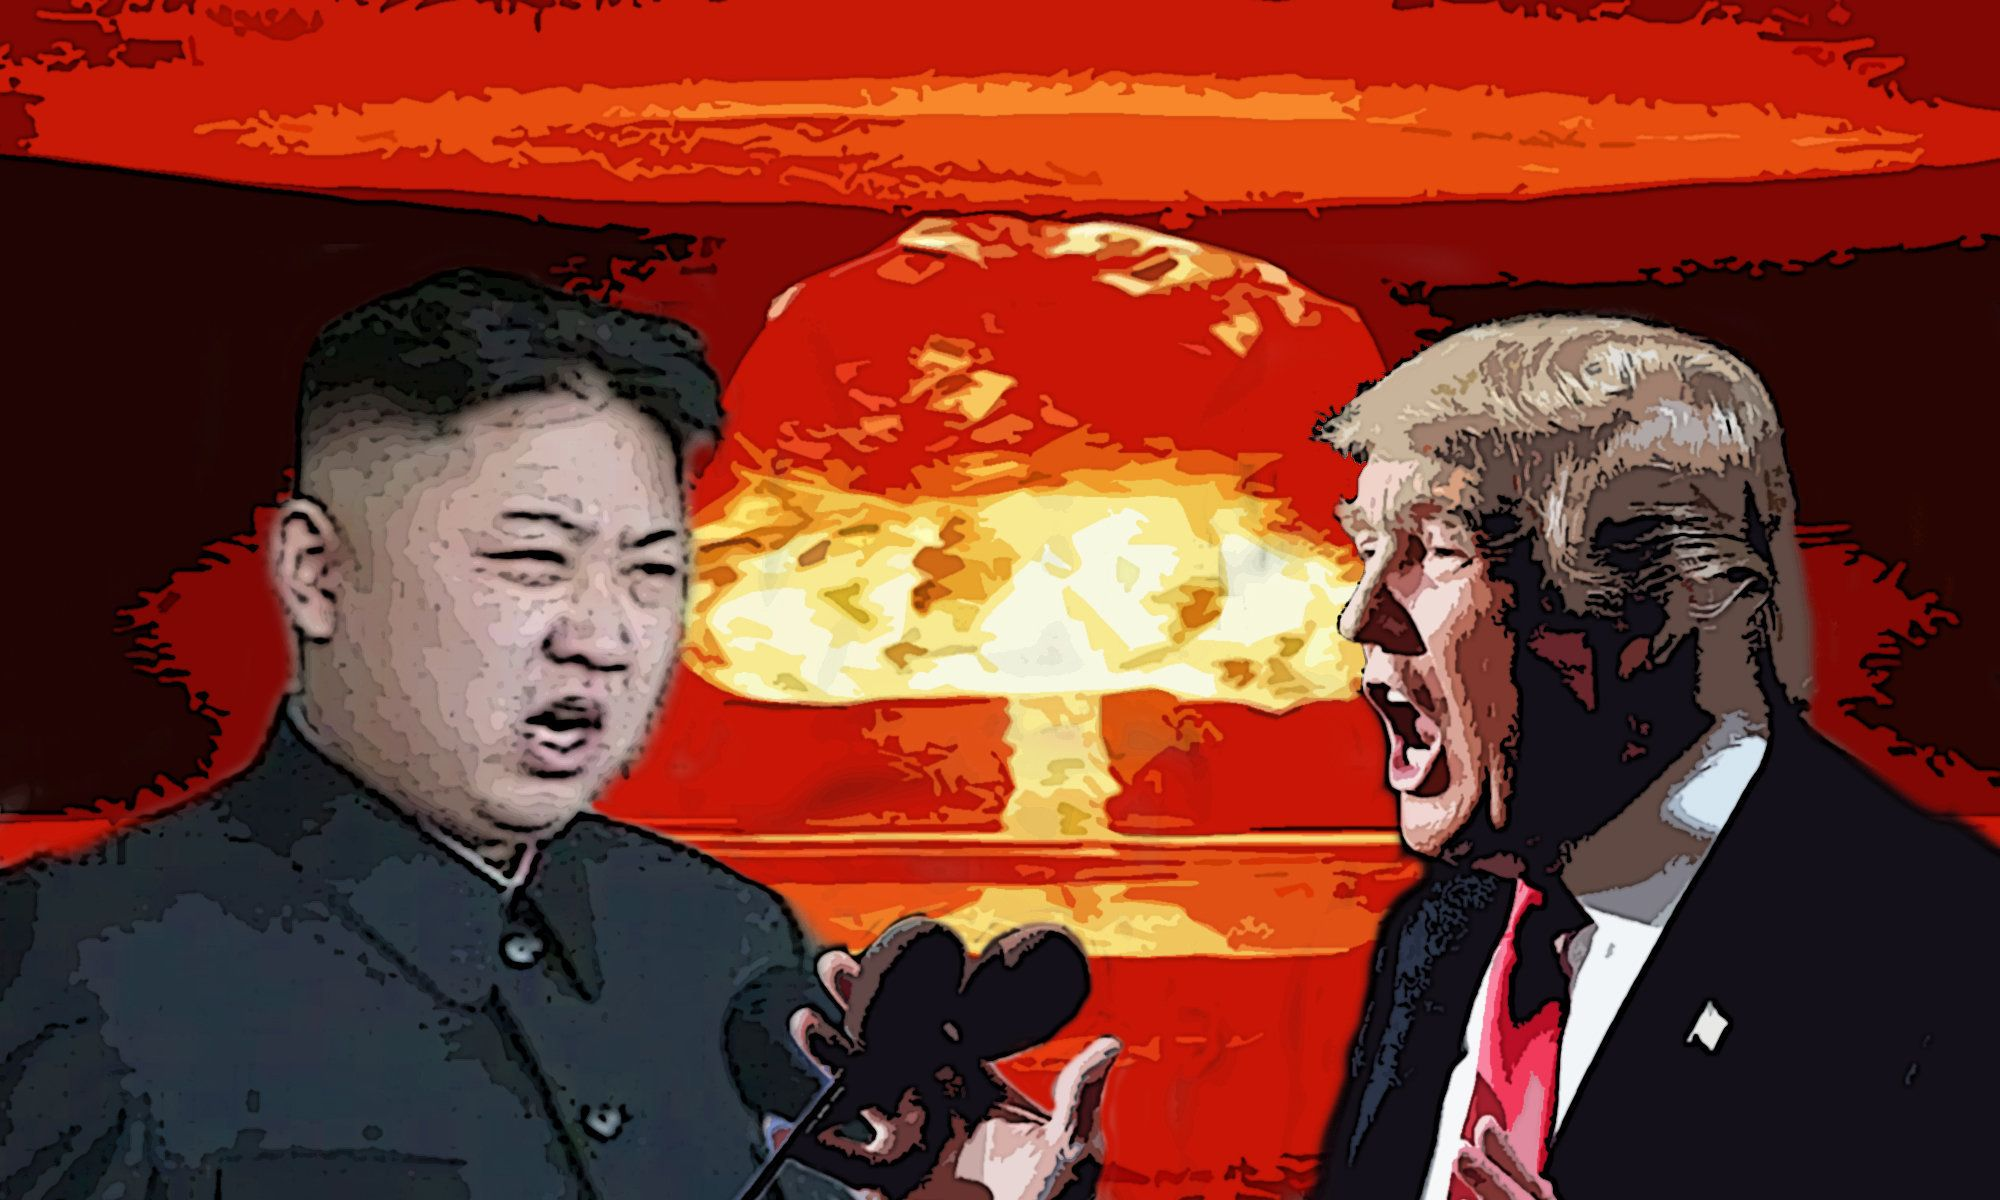 Donald Trump and Kim Jong Un have been engaged in a tense war of words.